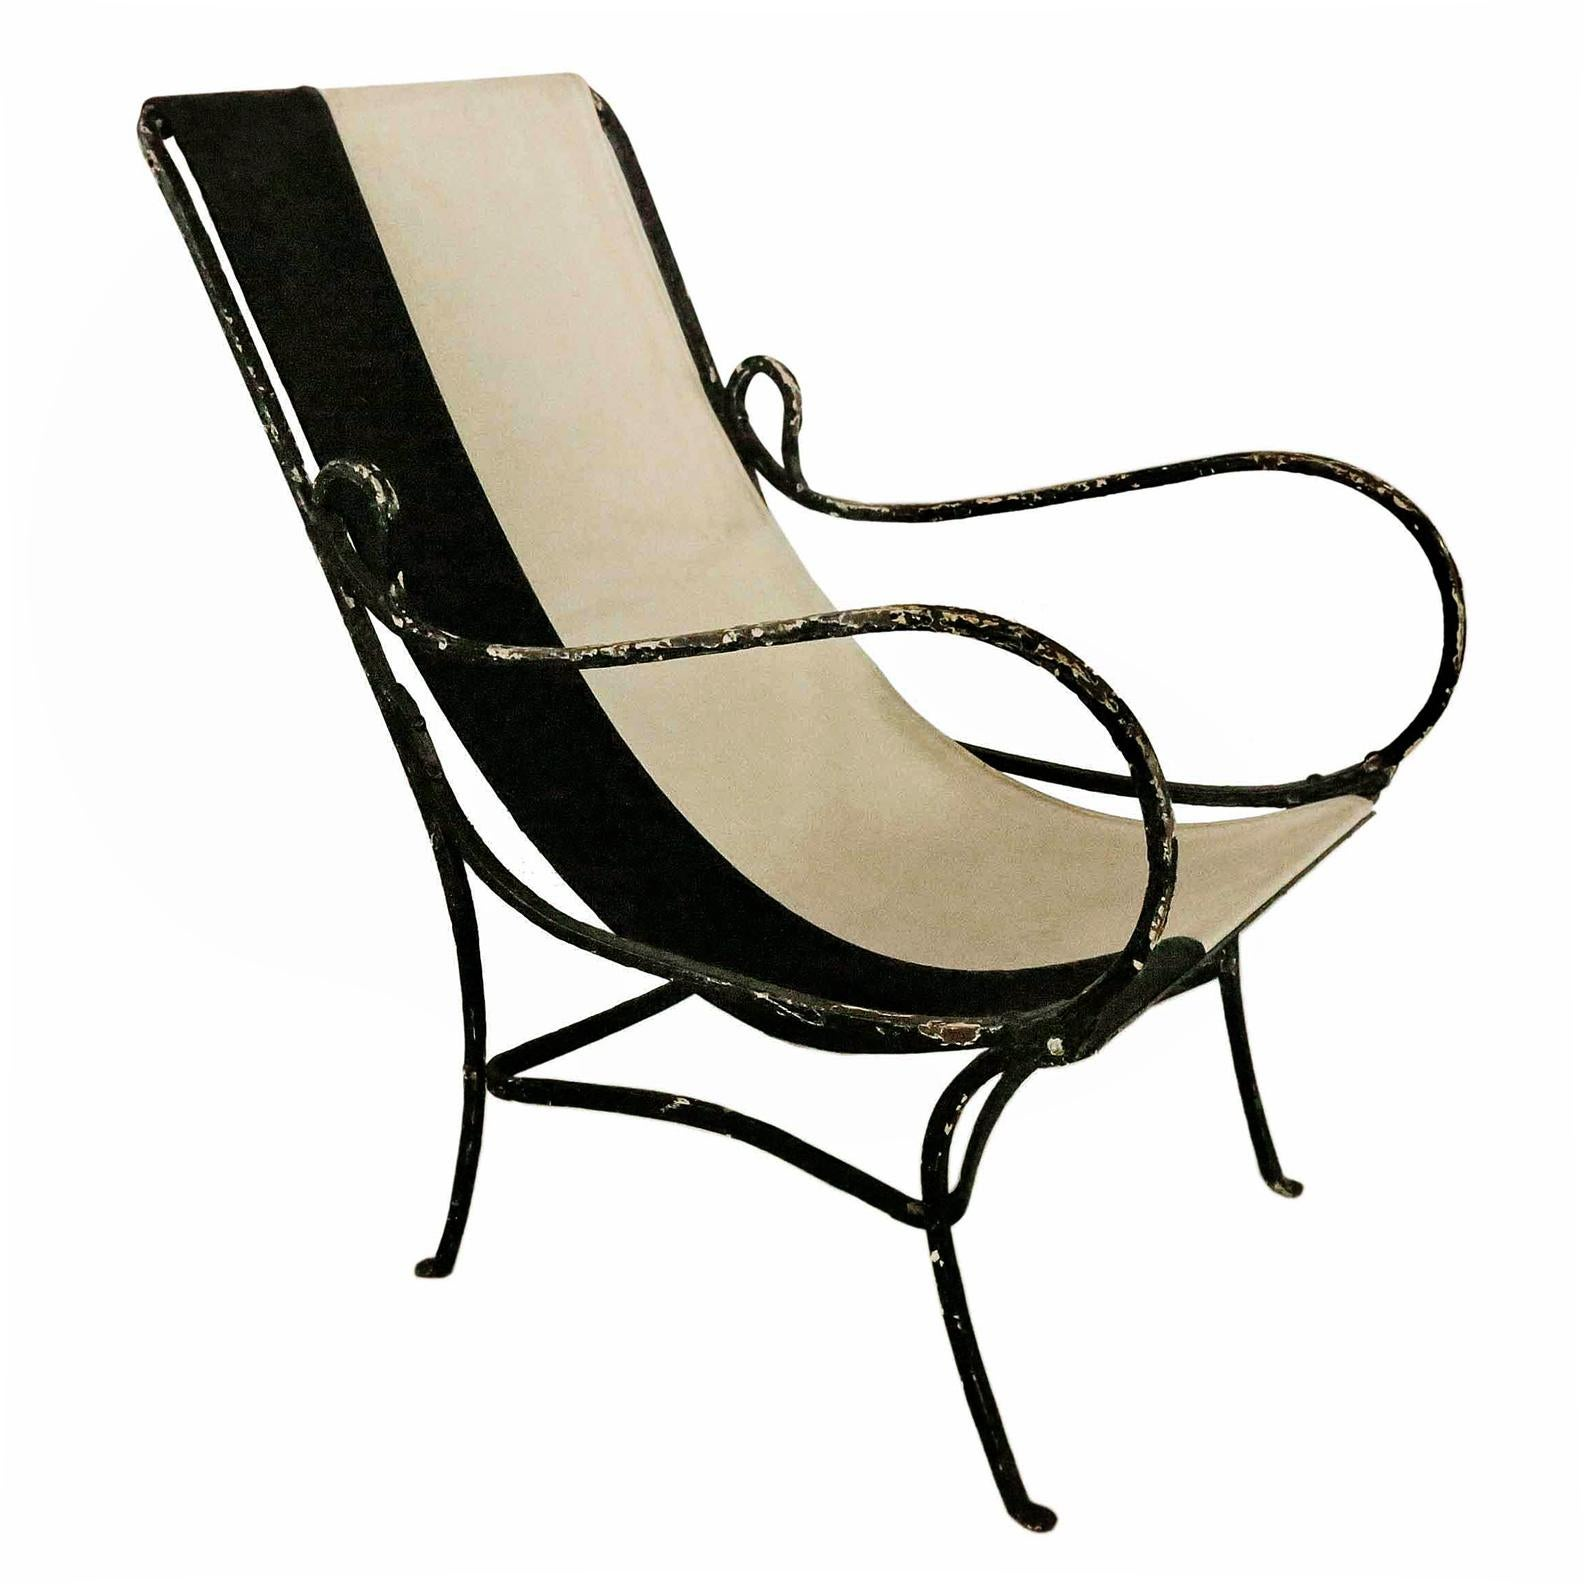 Genial Wrought Iron Slingback Chair With Canvas For Sale In New York   Image 6 Of 6